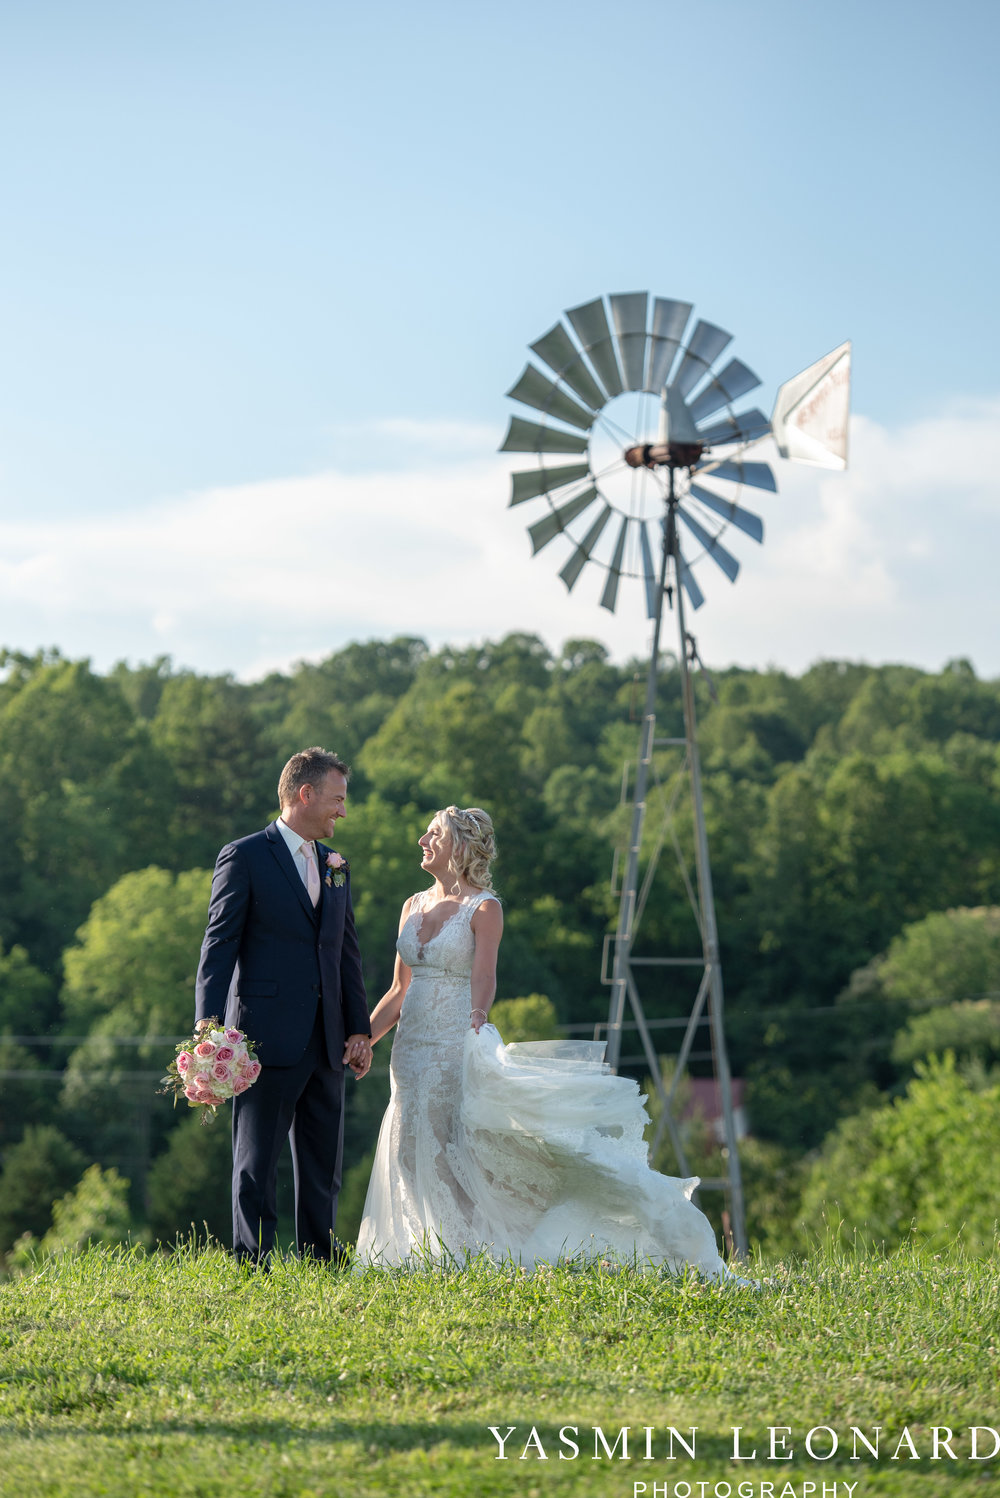 Elkin Creek Vineyard - Elkin Creek Weddings - NC Wine - NC Wineries - NC Weddings - NC Photographers - NC Wedding Photographer - NC Winery Wedding Ideas - Yasmin Leonard Photography - High Point Wedding Photographer-61.jpg